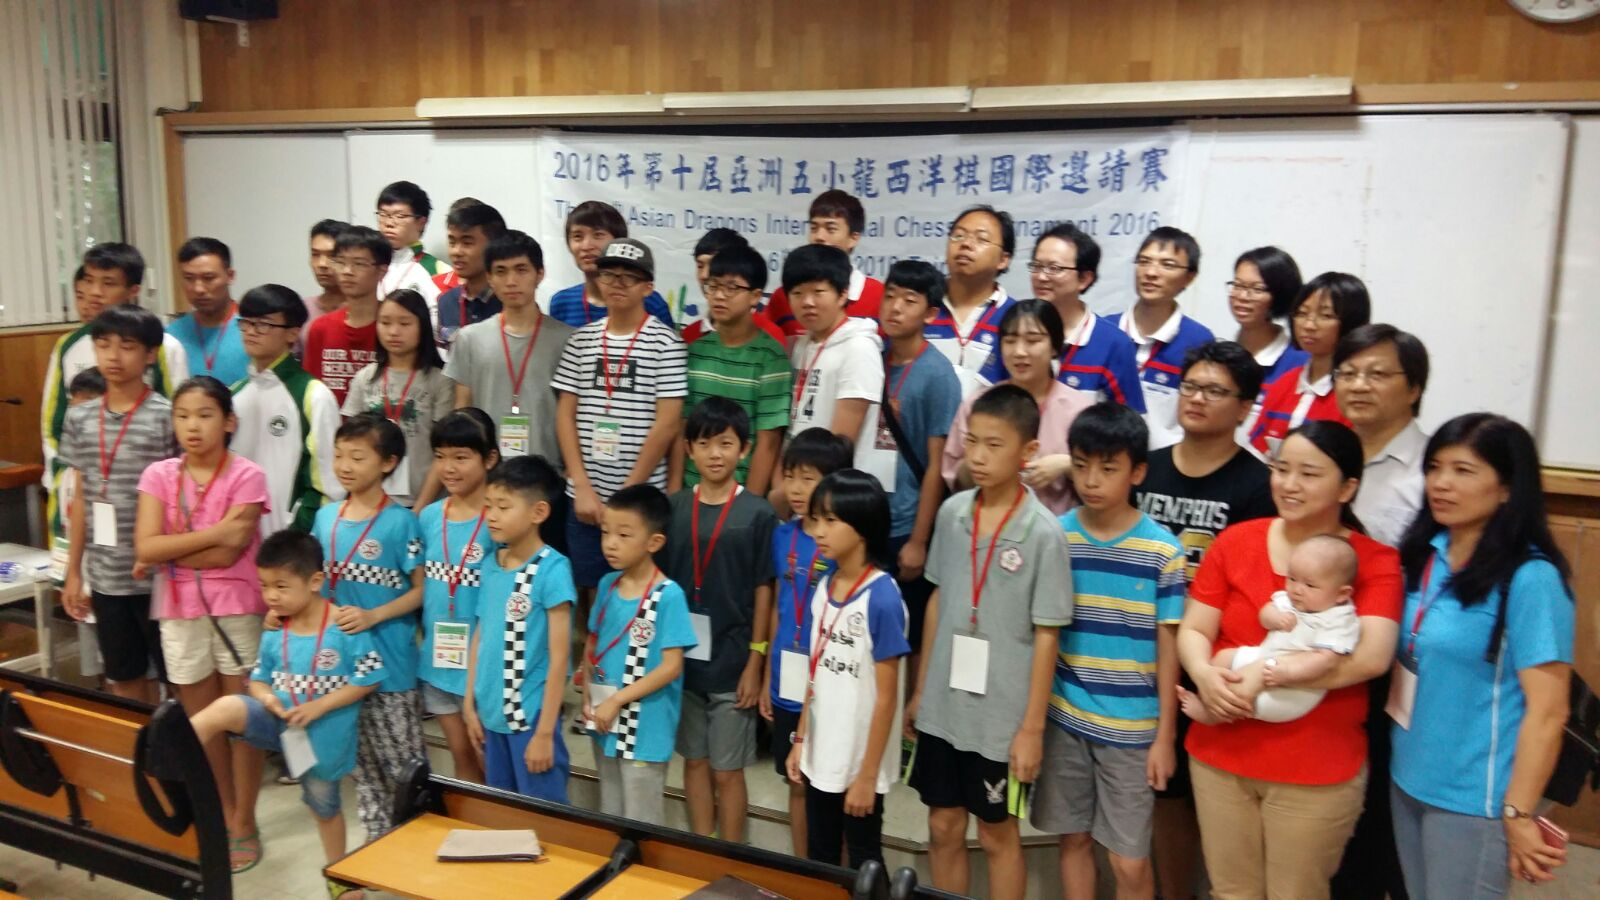 Hong Kong Players scored good results in Asian Dragon 2016 Chess Championships